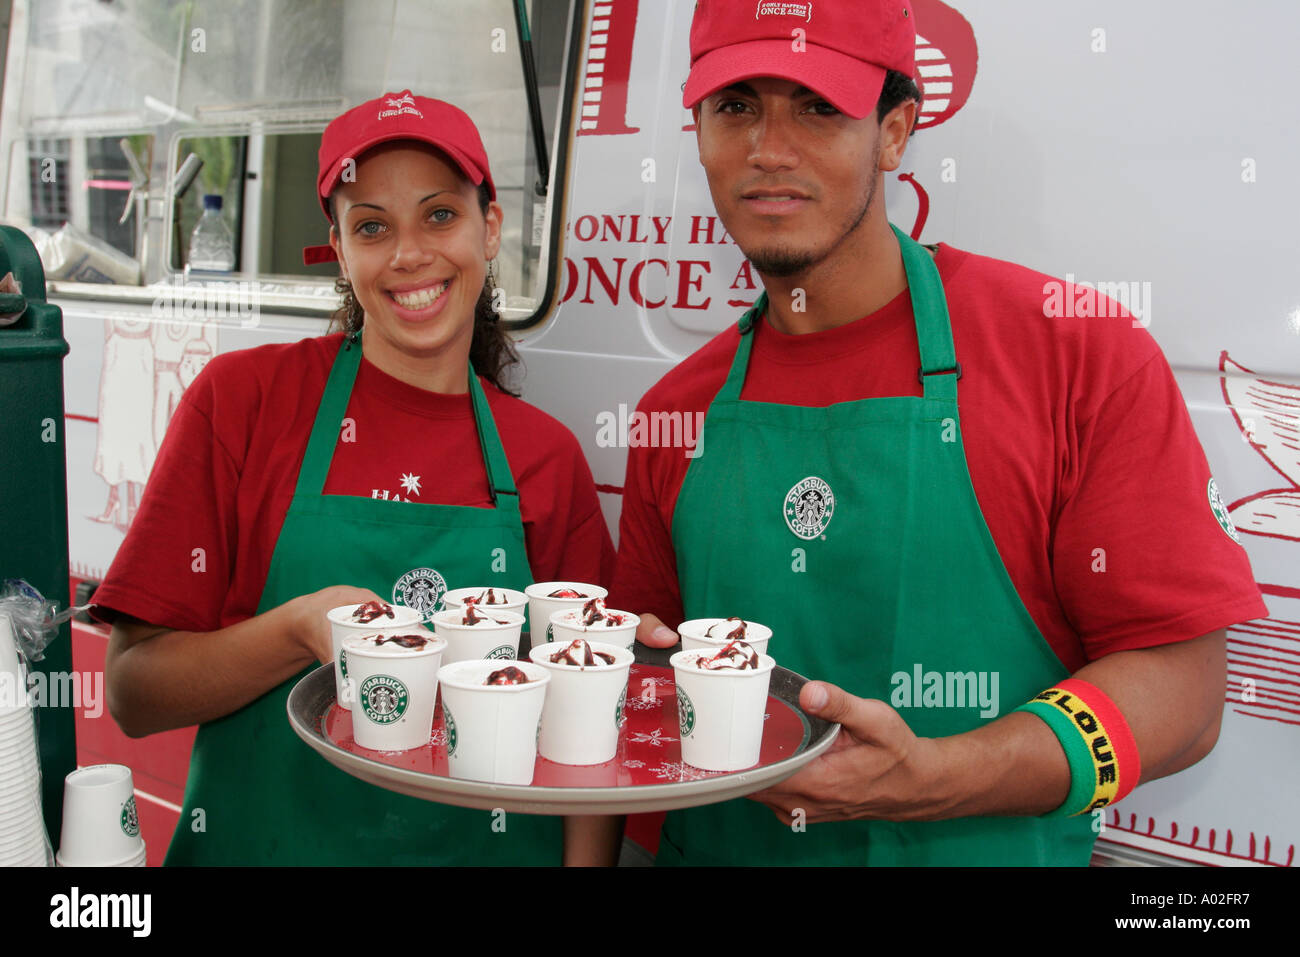 Starbucks free samples